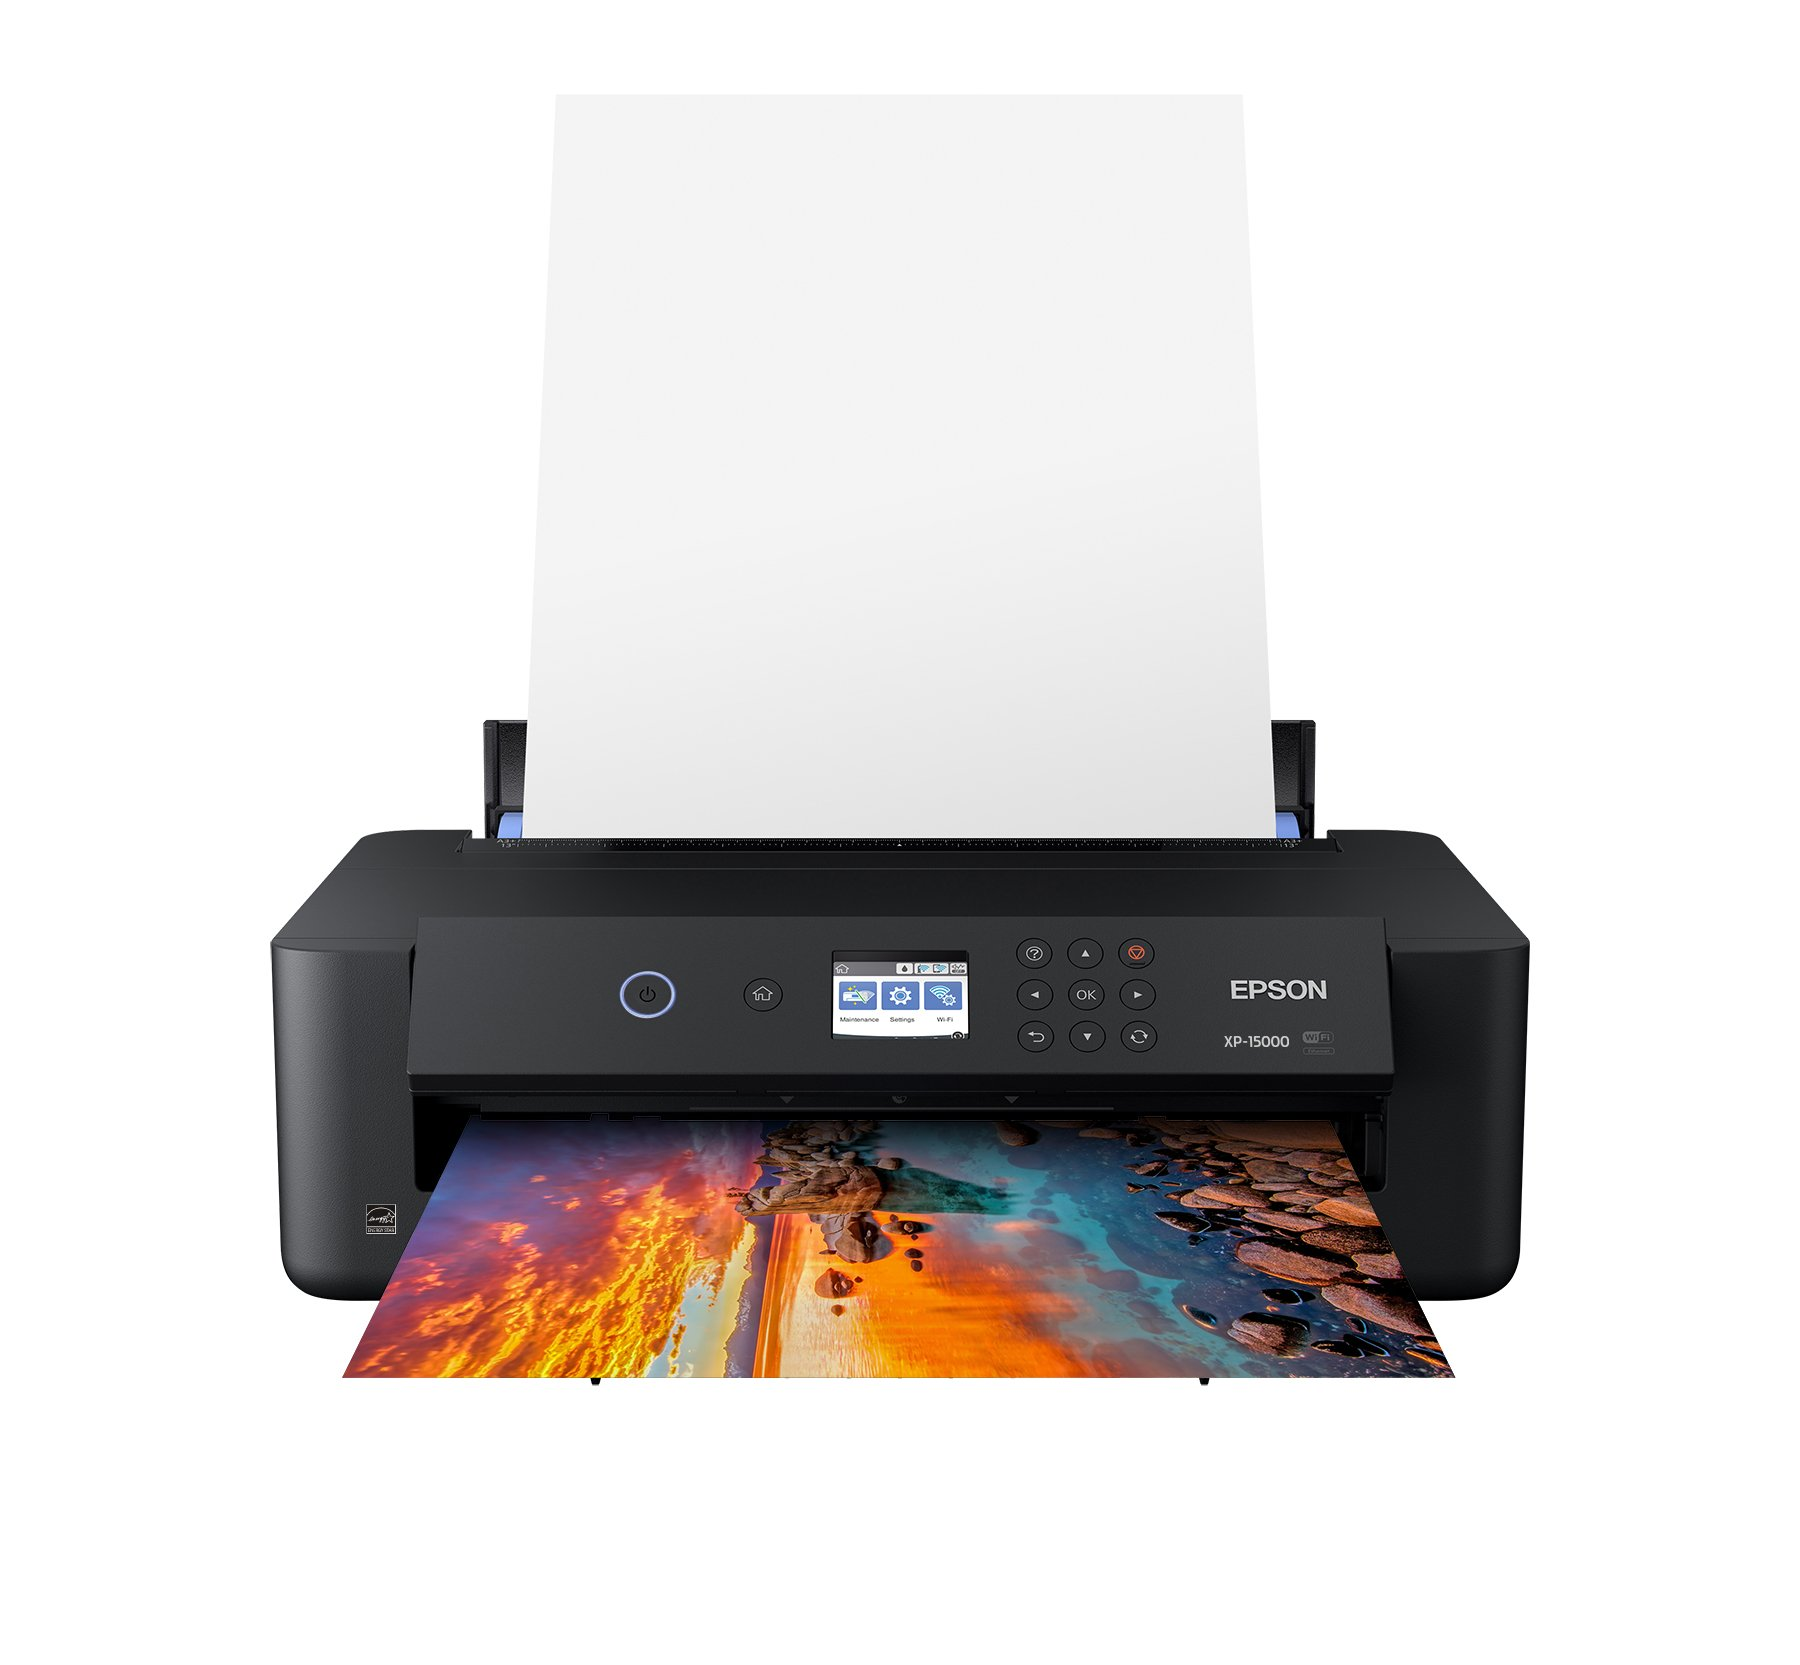 Epson Expression Photo HD XP-15000 Wireless Color Wide-Format Printer, Amazon Dash Replenishment Enabled (Renewed)